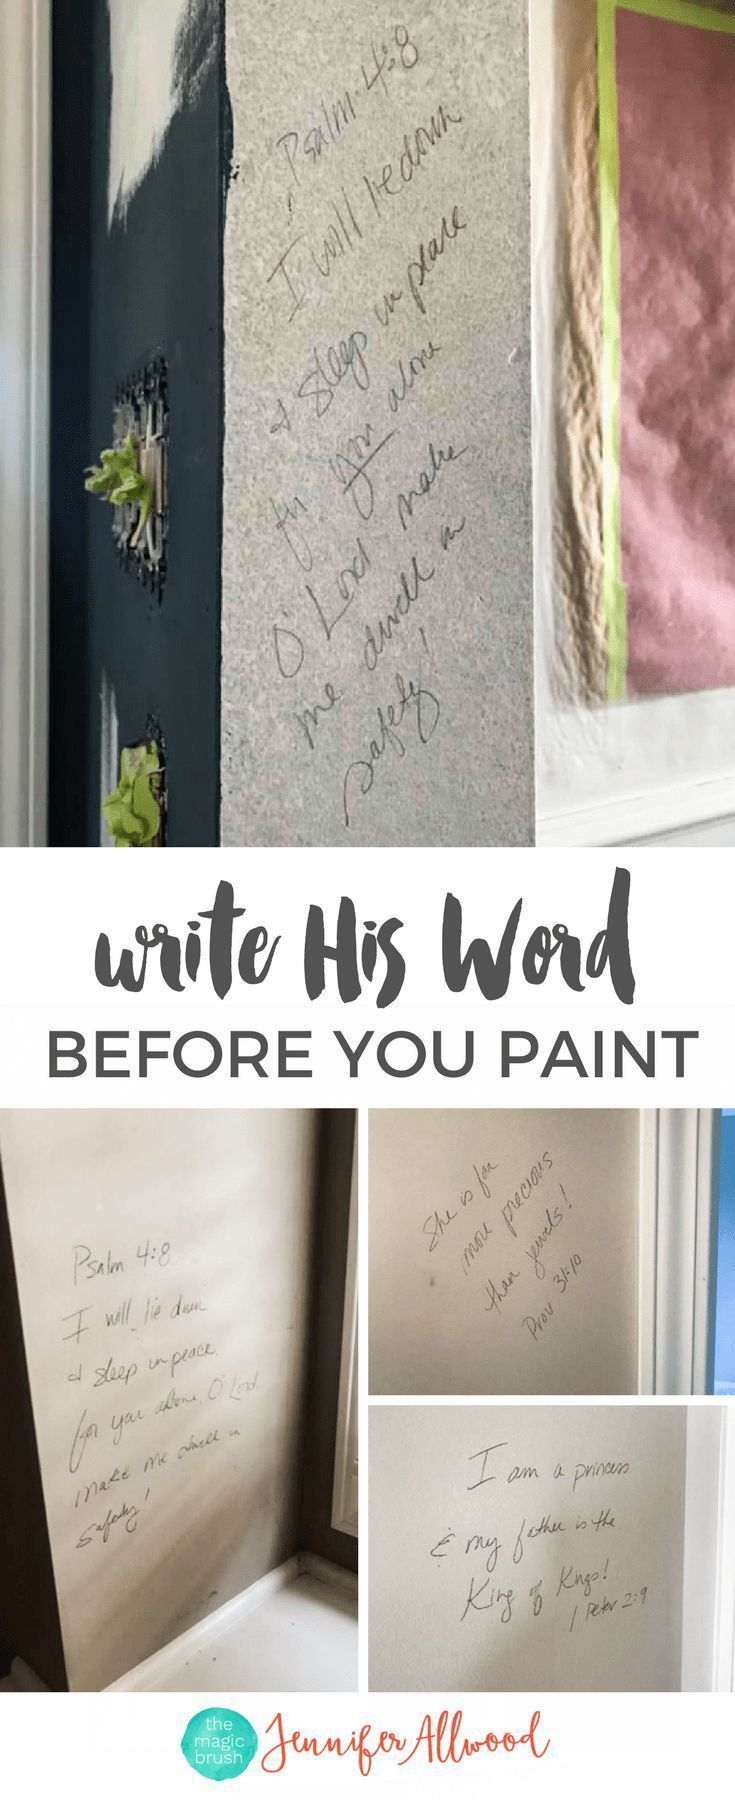 Info's : Writing Bible Scriptures on Walls before you paint by Jennifer Allwood | remodeling tips | Painting Tips | How to Prep before you Paint Walls #paintingtips #paintingrooms #homedecor #DIY